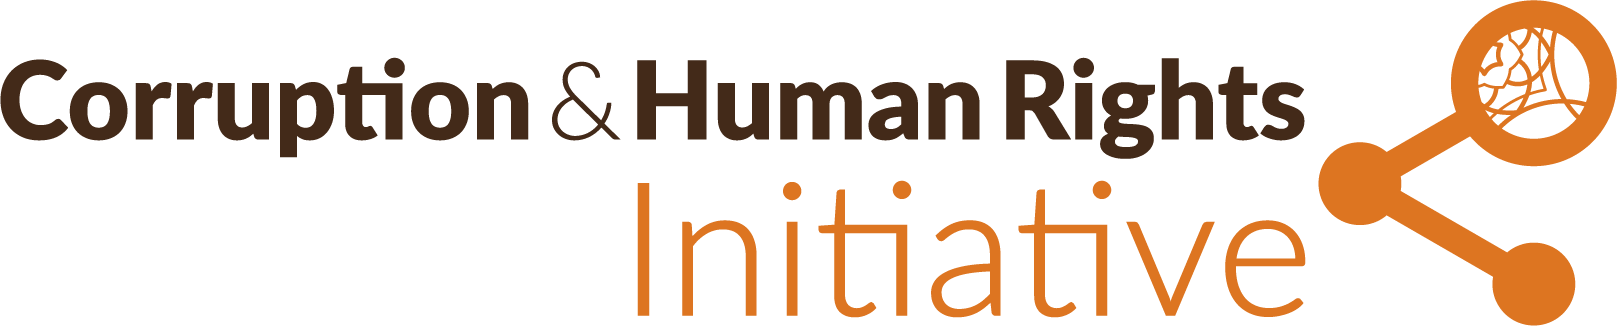 Corruption and Human Rights Initiative